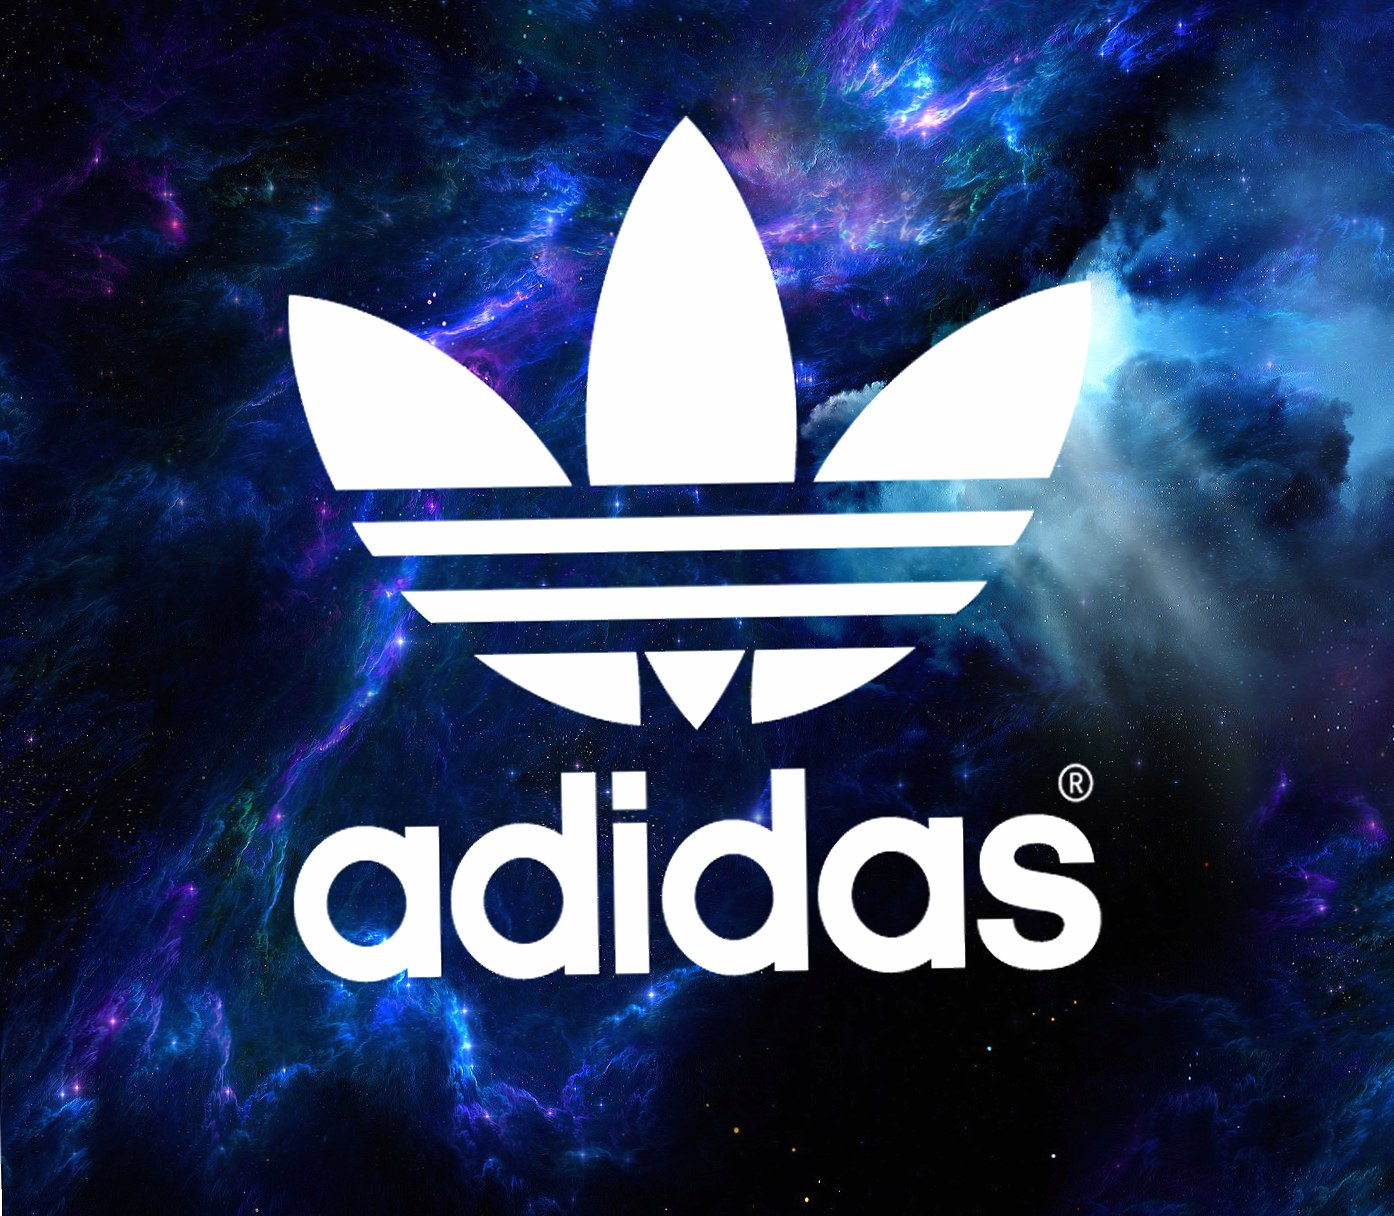 Adidas Deep Space wallpapers HD quality